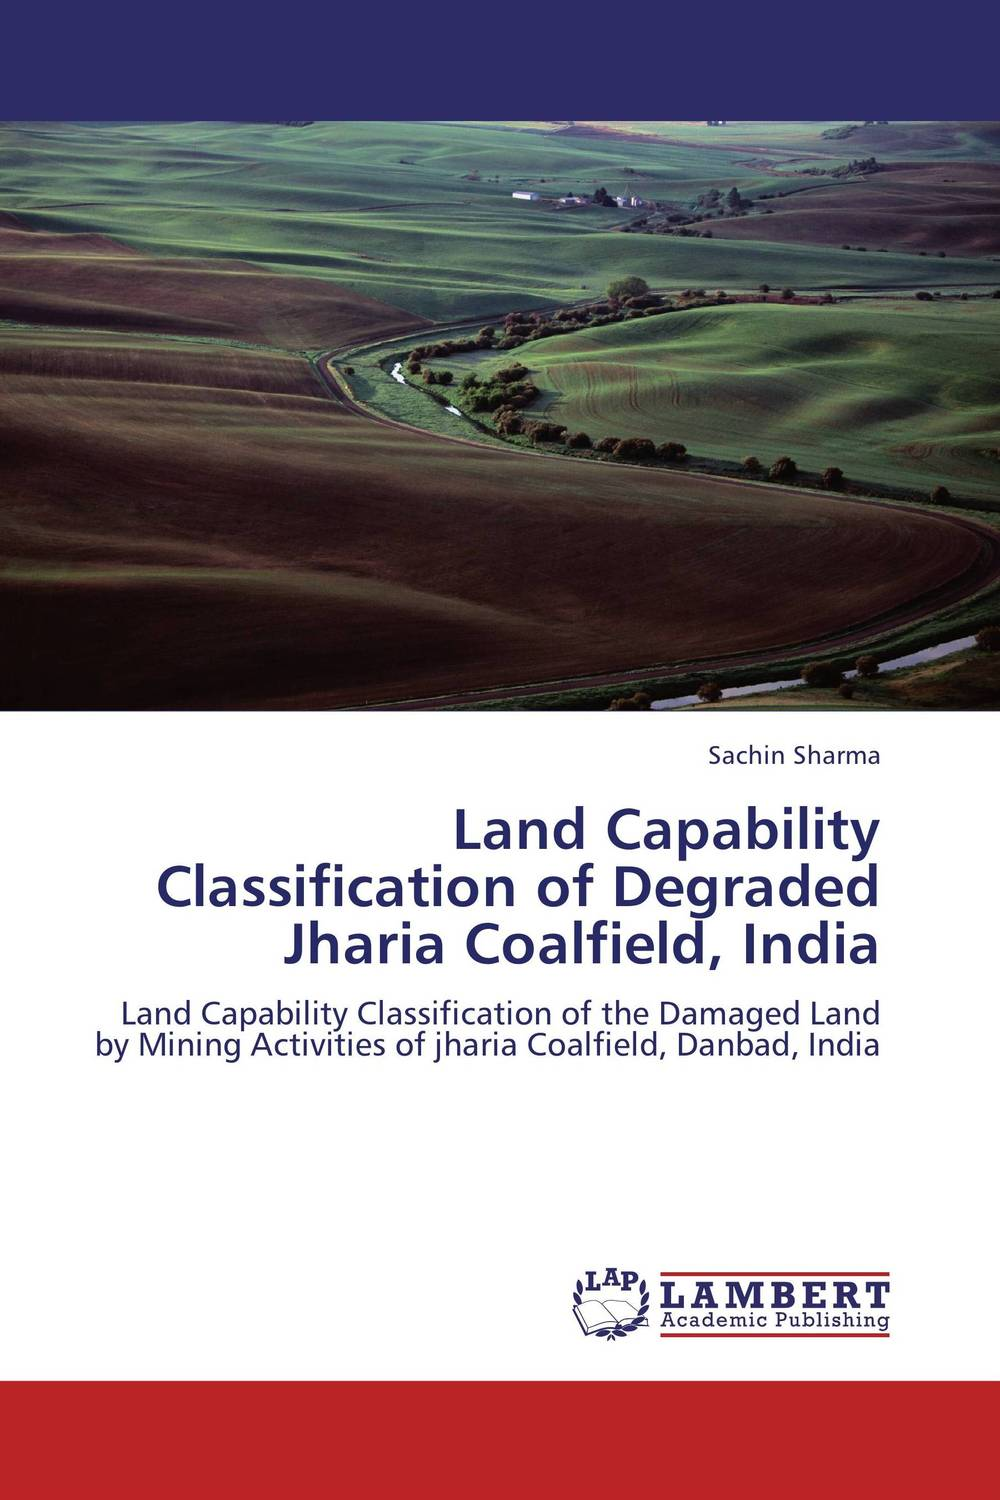 Land Capability Classification of Degraded Jharia Coalfield, India rajarshi dasgupta assessment of land degradation and its restoration in jharia coalfield